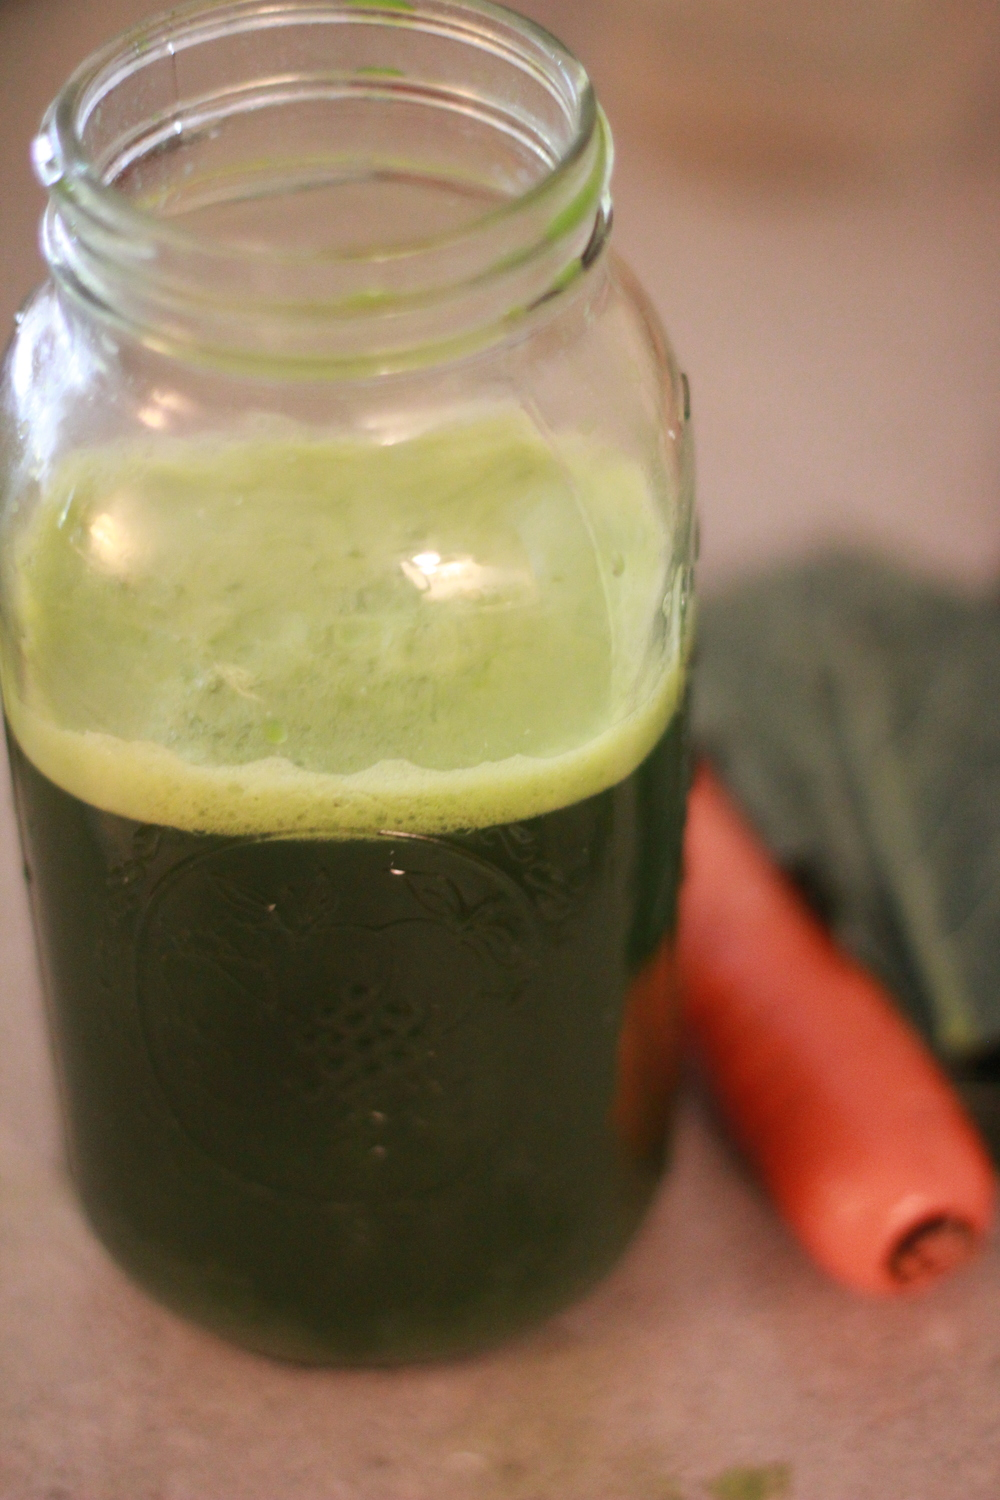 juicing with a vitamix | seekthewelfare